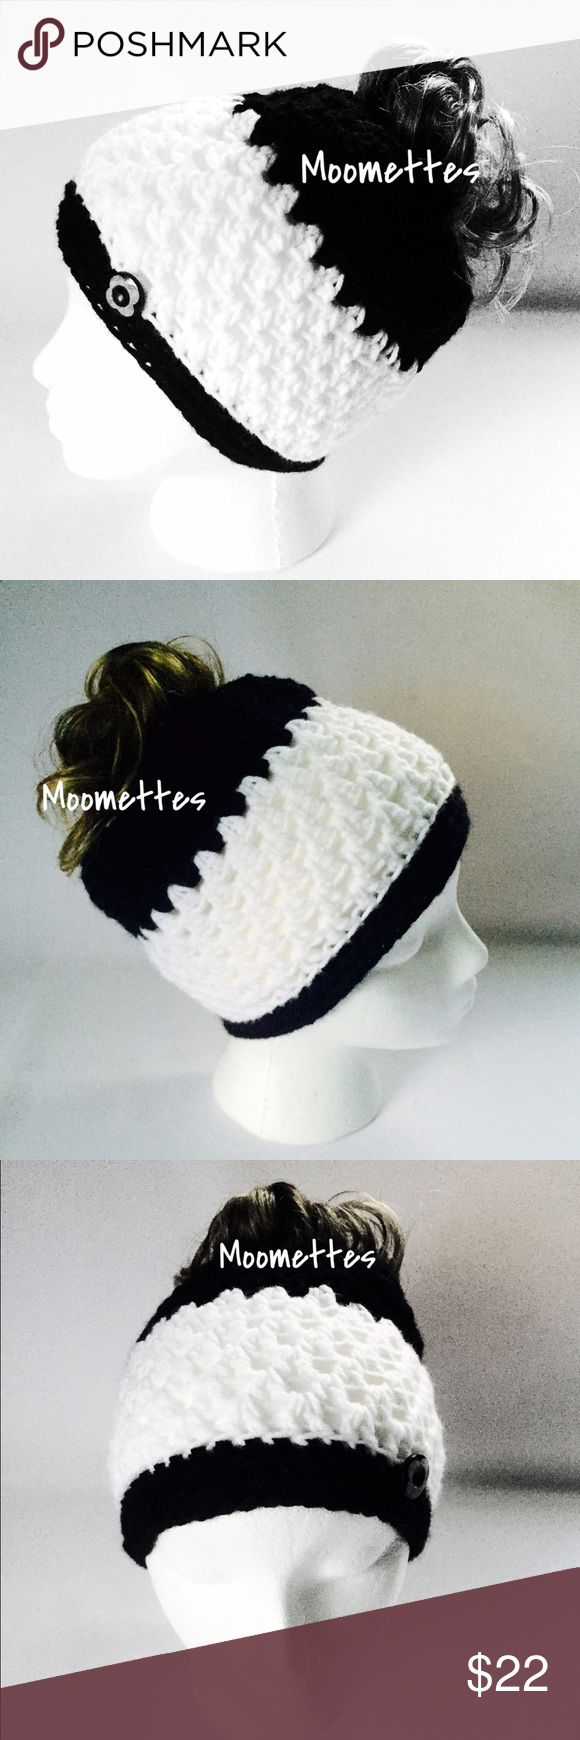 "Messy Bun Hat Black White Ponytail Beanie  Chunky Messy Bun Hat Black White Stripe Ponytail Beanie Handmade Crochet Wood Buttons Size 20"" Fits 22"" Circumference New Handmade in USA  Trades Handmade Accessories Hats"